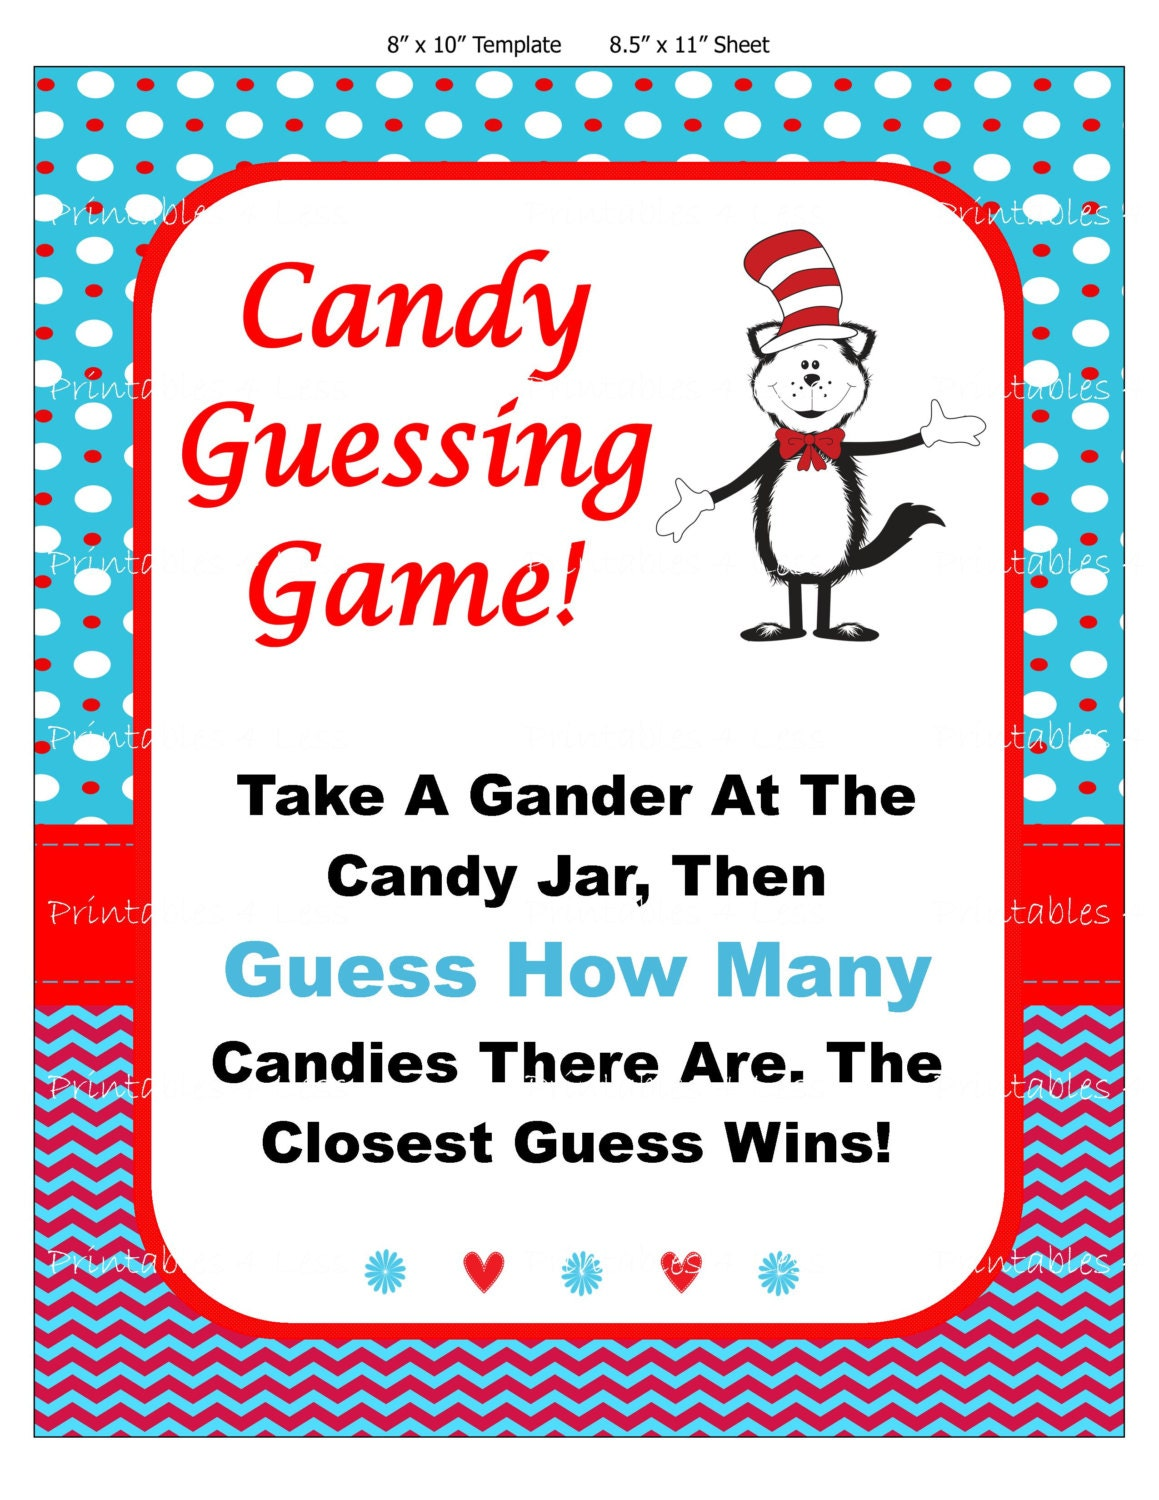 seuss candy guessing game seuss baby candy game printable. Black Bedroom Furniture Sets. Home Design Ideas